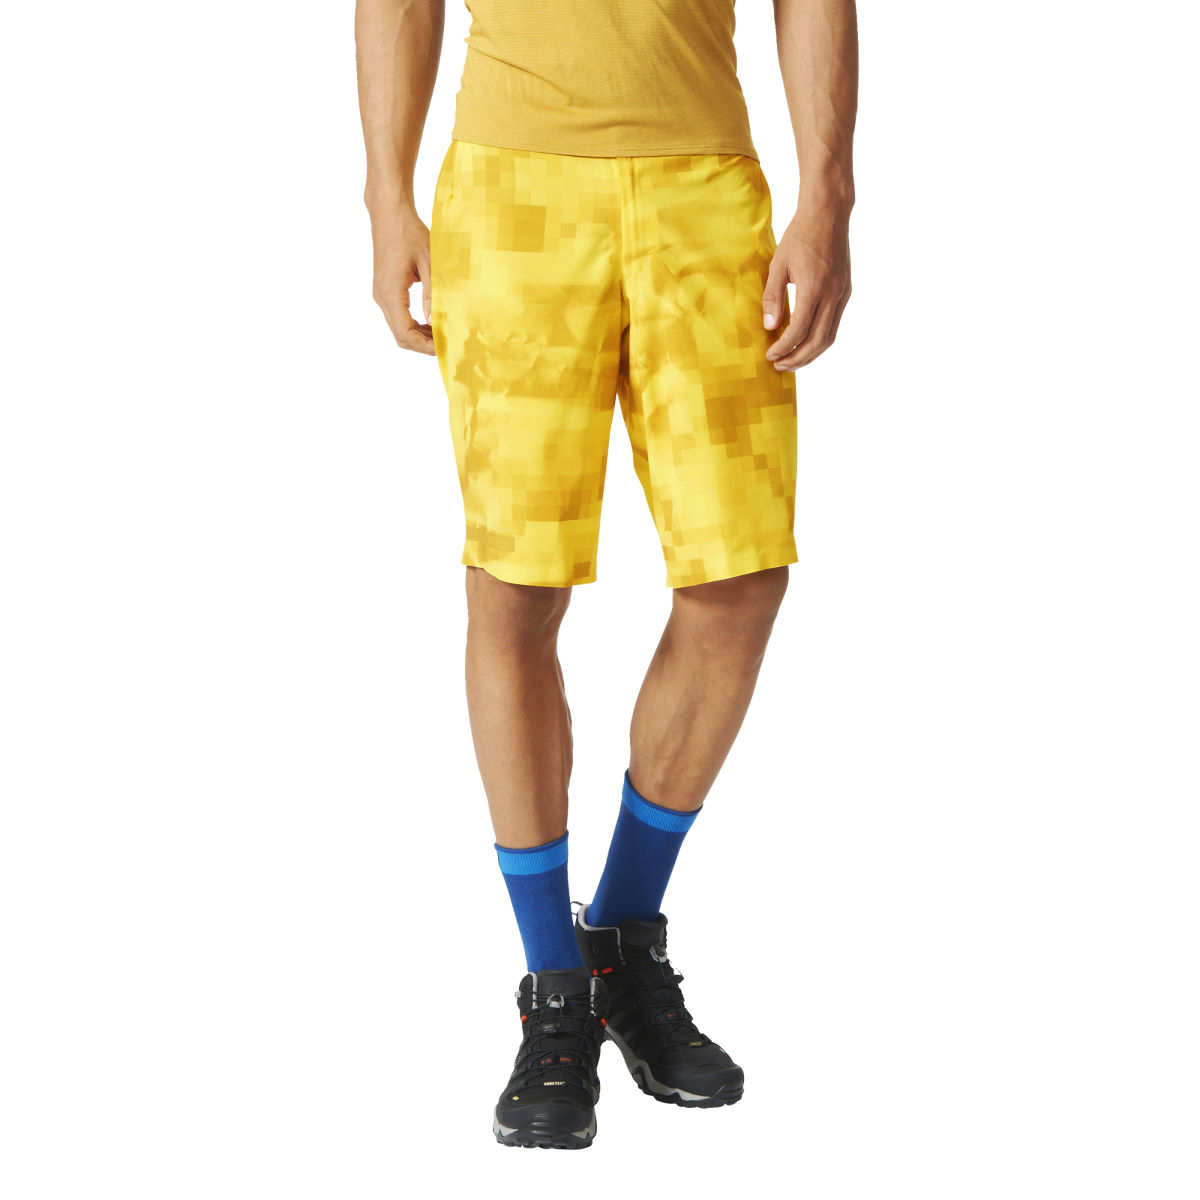 Bermuda adidas TX Endmt - 34 Yellow/Orange Shorts